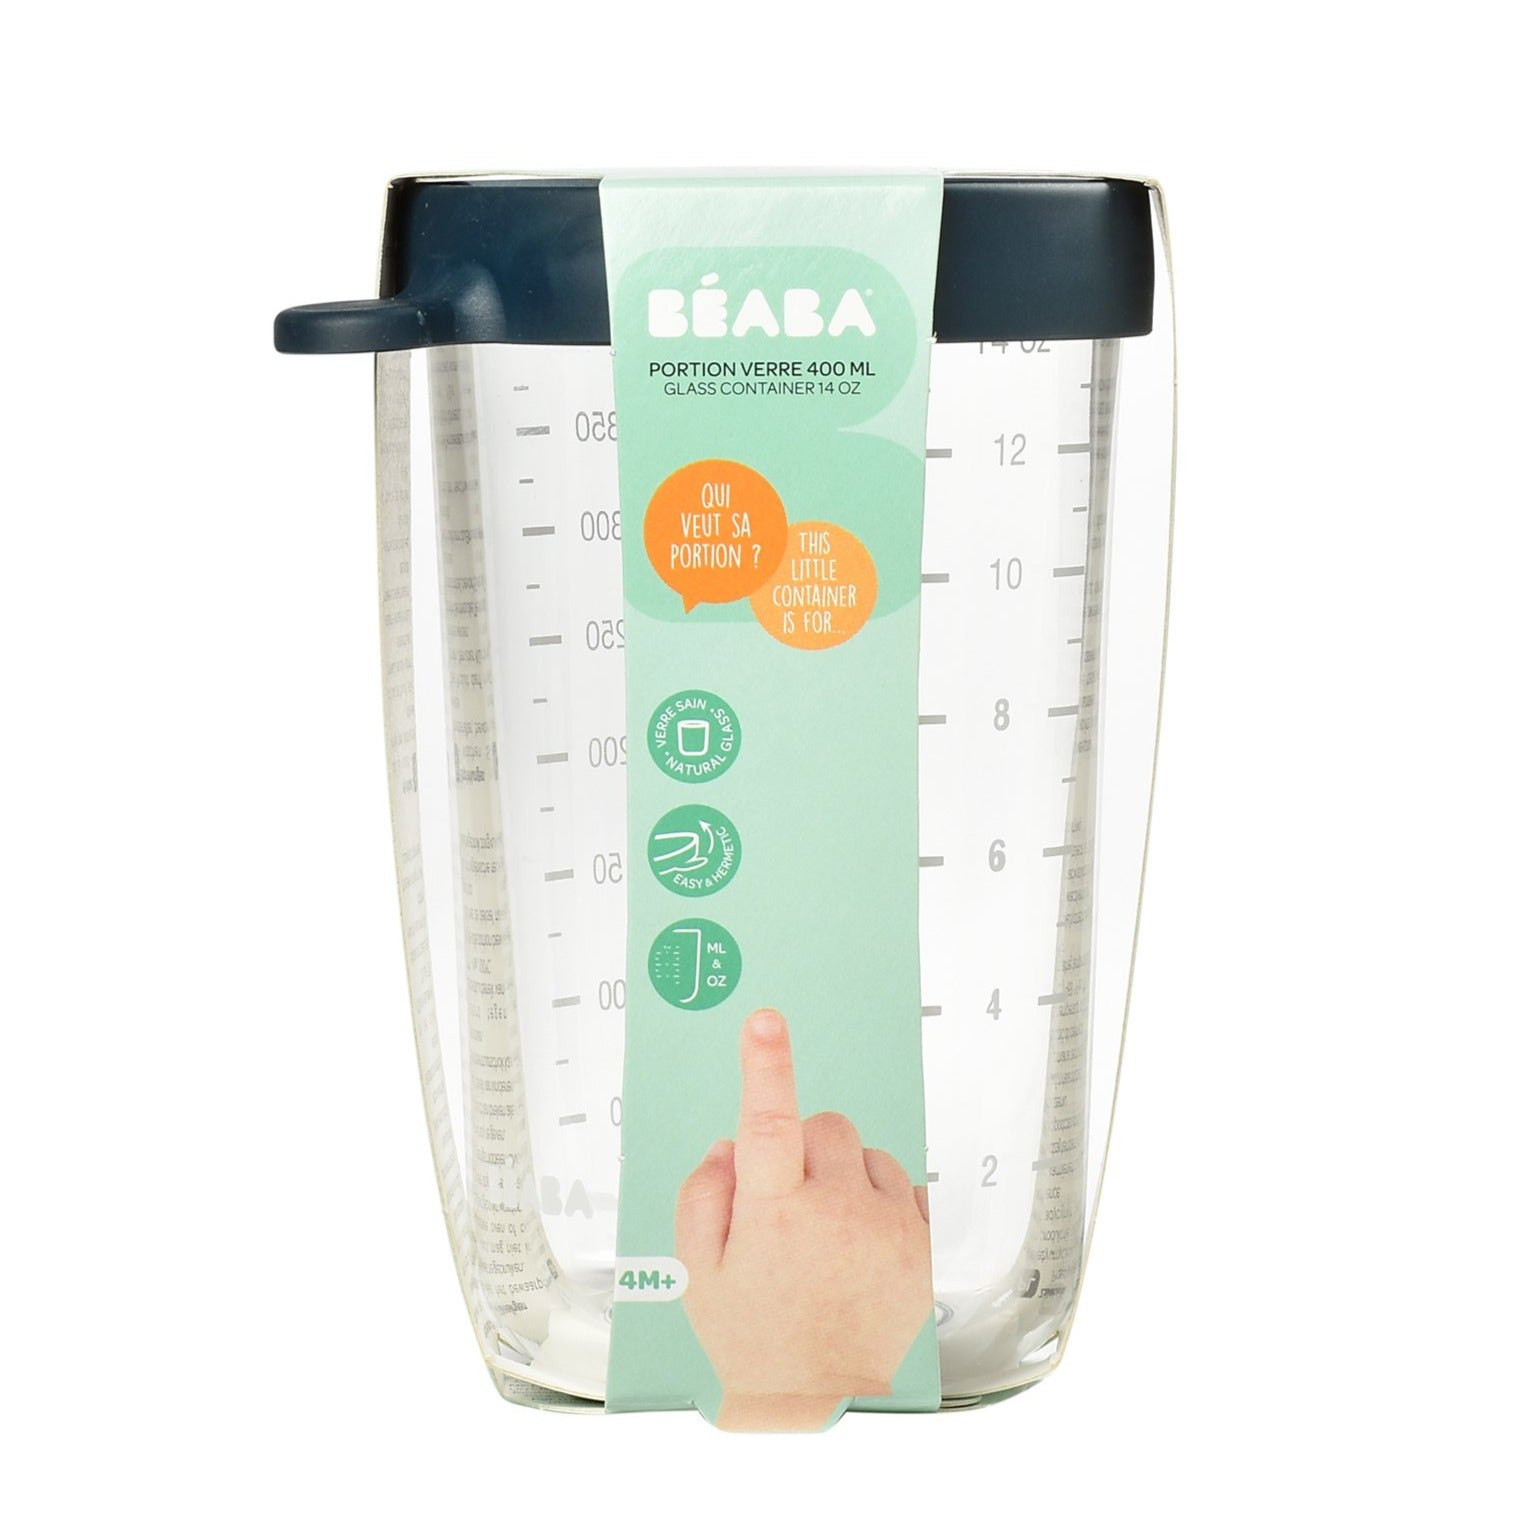 Beaba Superior Glass Conservation Jar 400ml